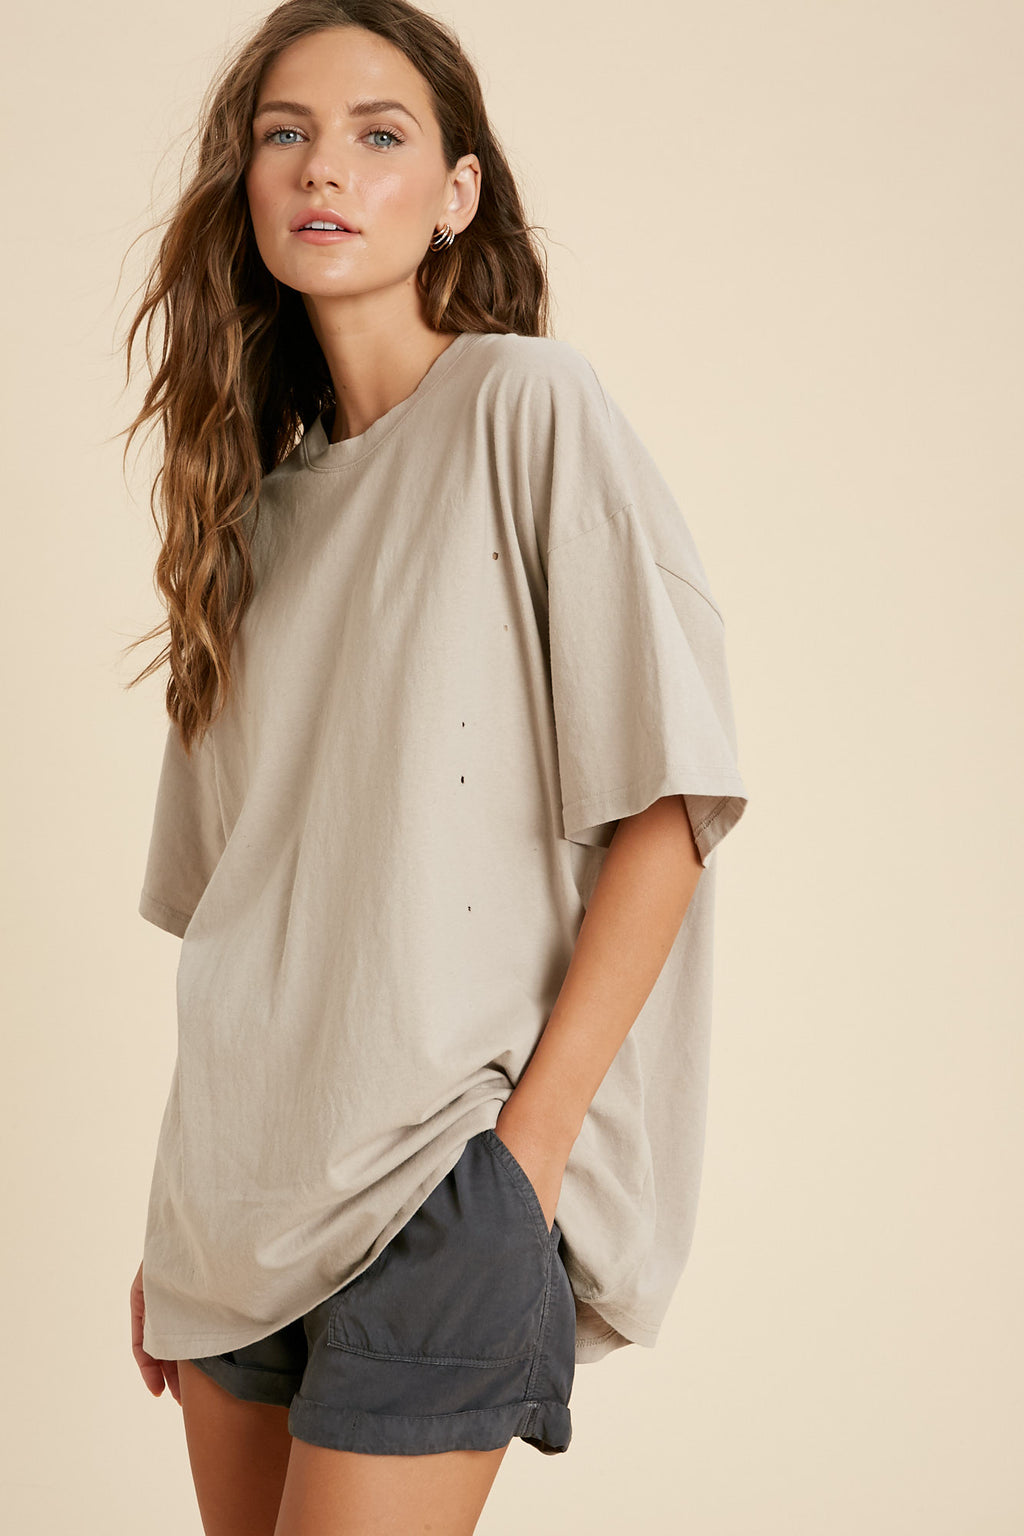 Her Oversized Distressed Tee - Stone